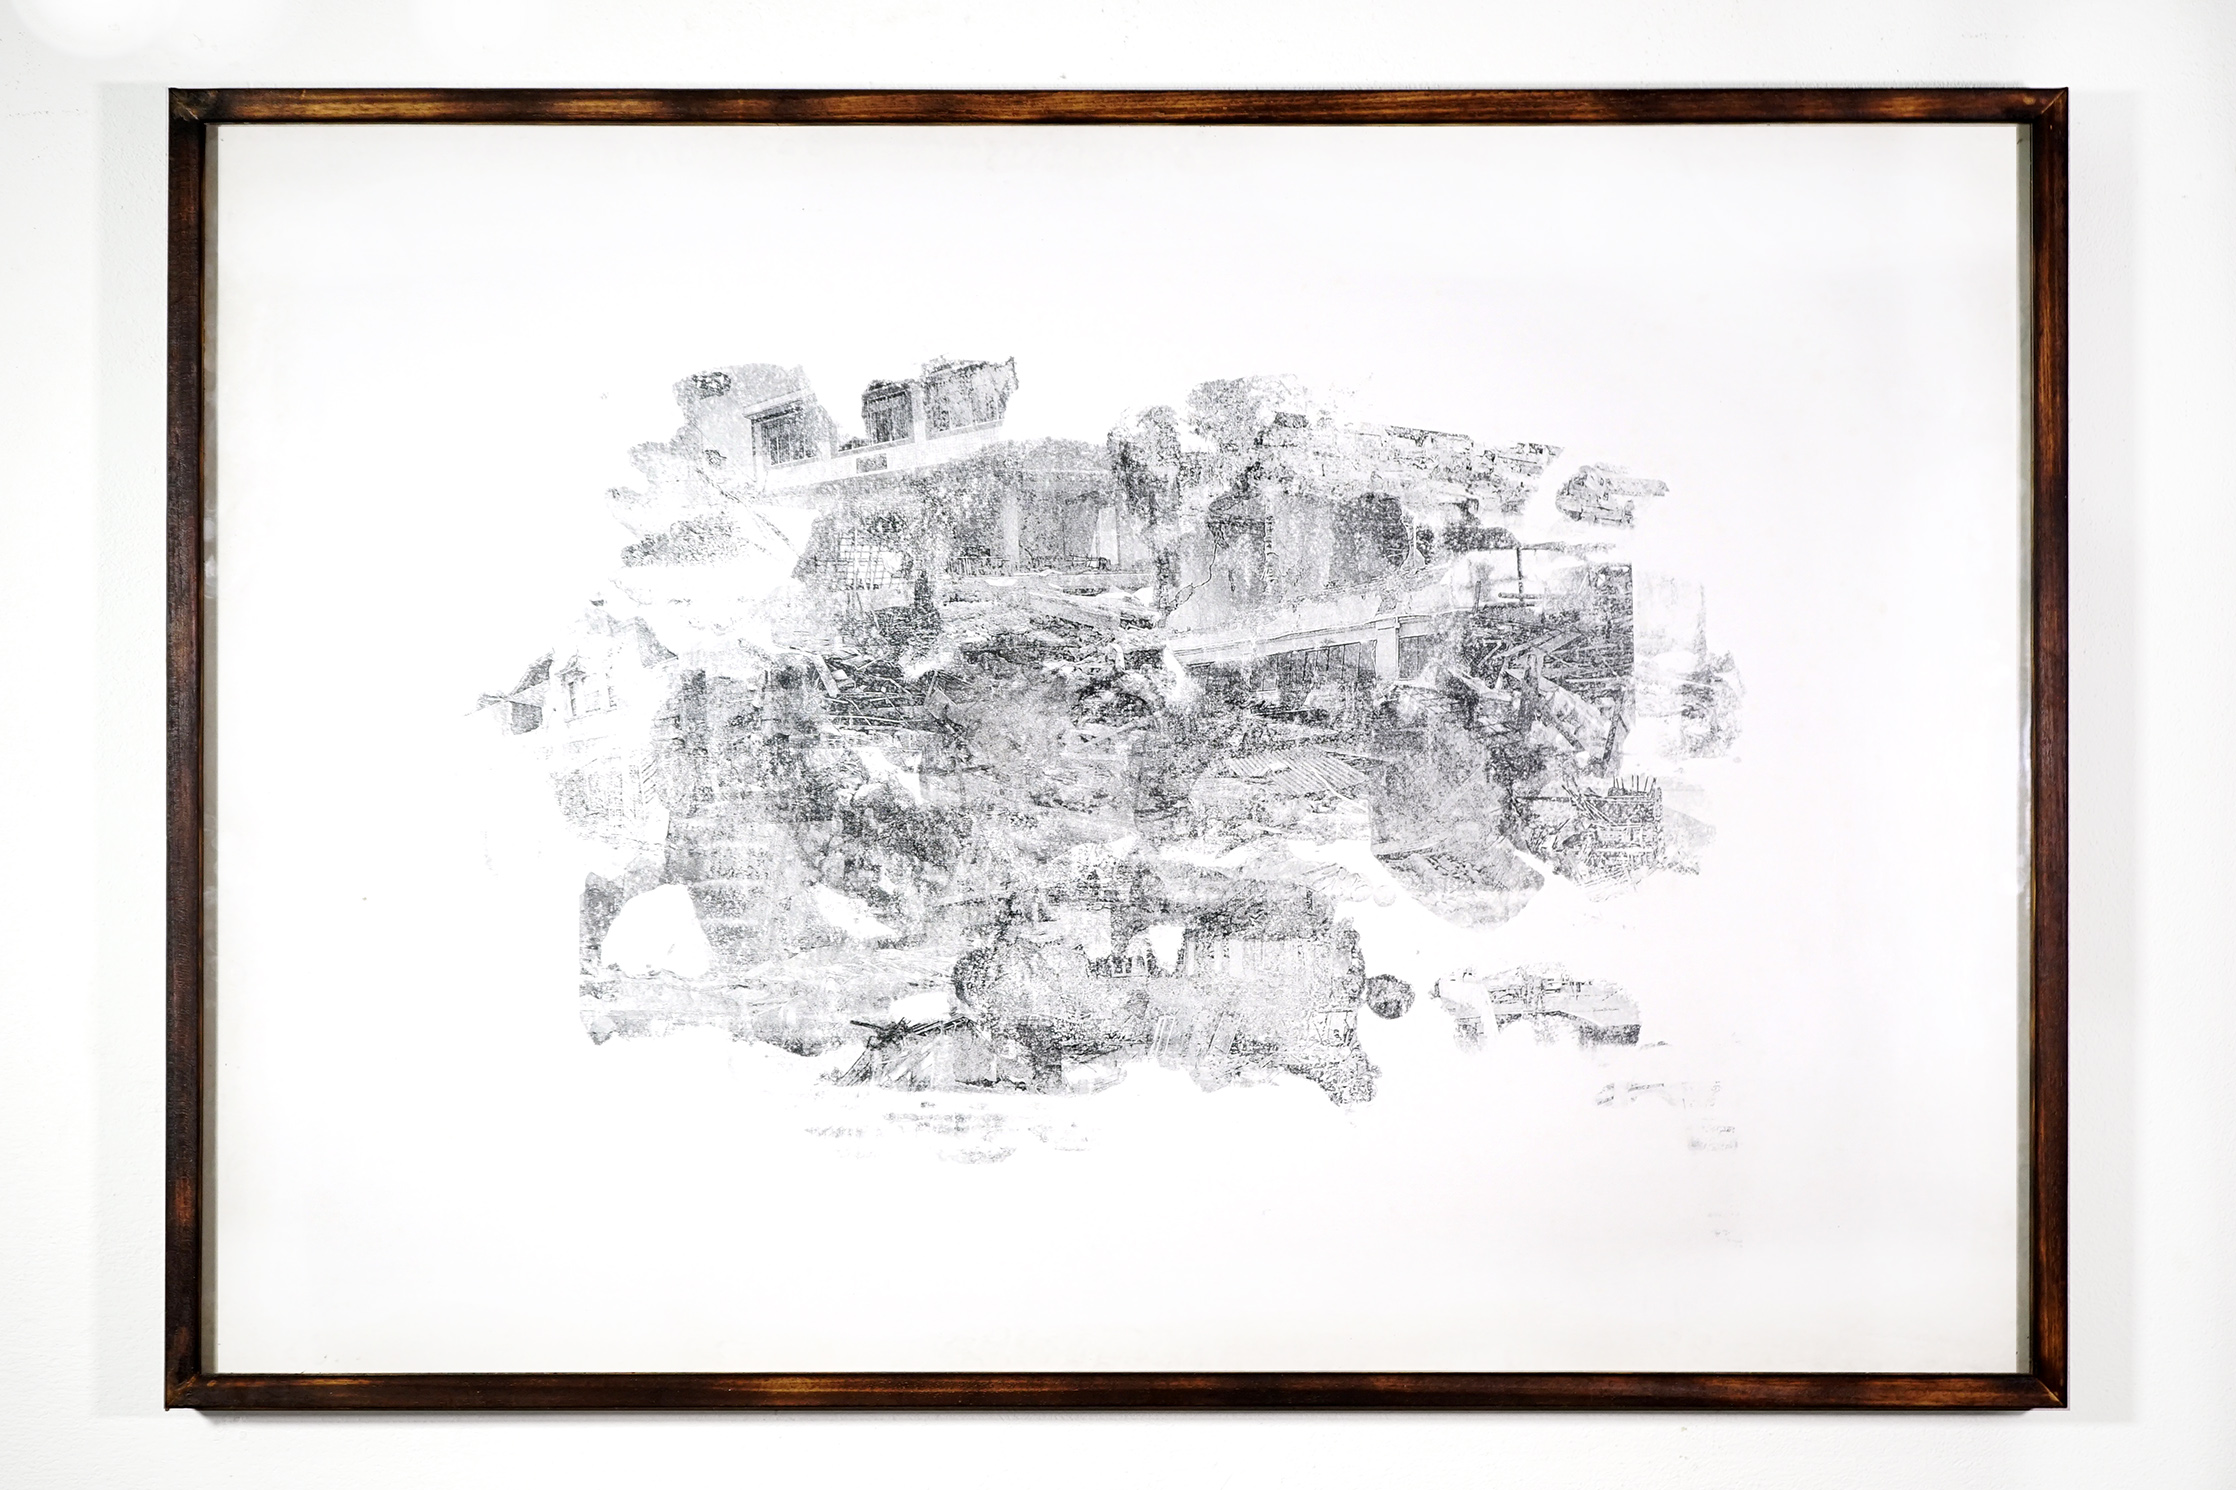 climate horizon #001 - 78x113cm with frame